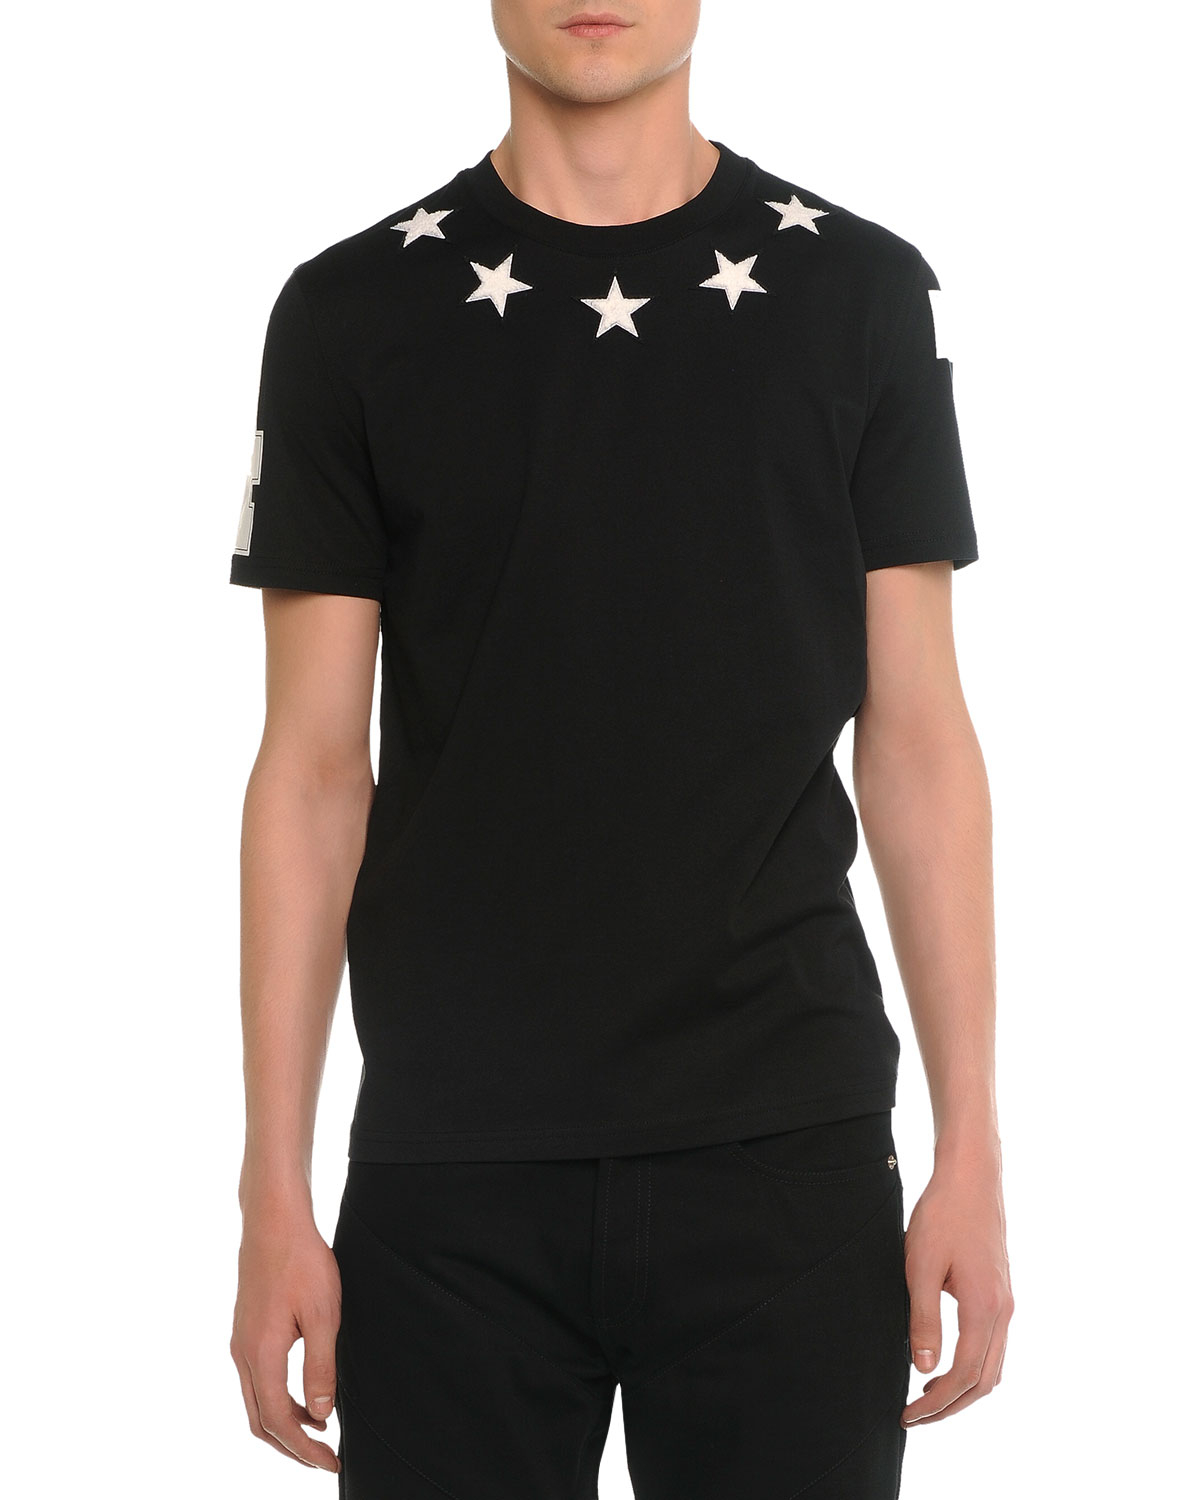 Givenchy star print t shirt in black for men lyst for Mens shirt with stars